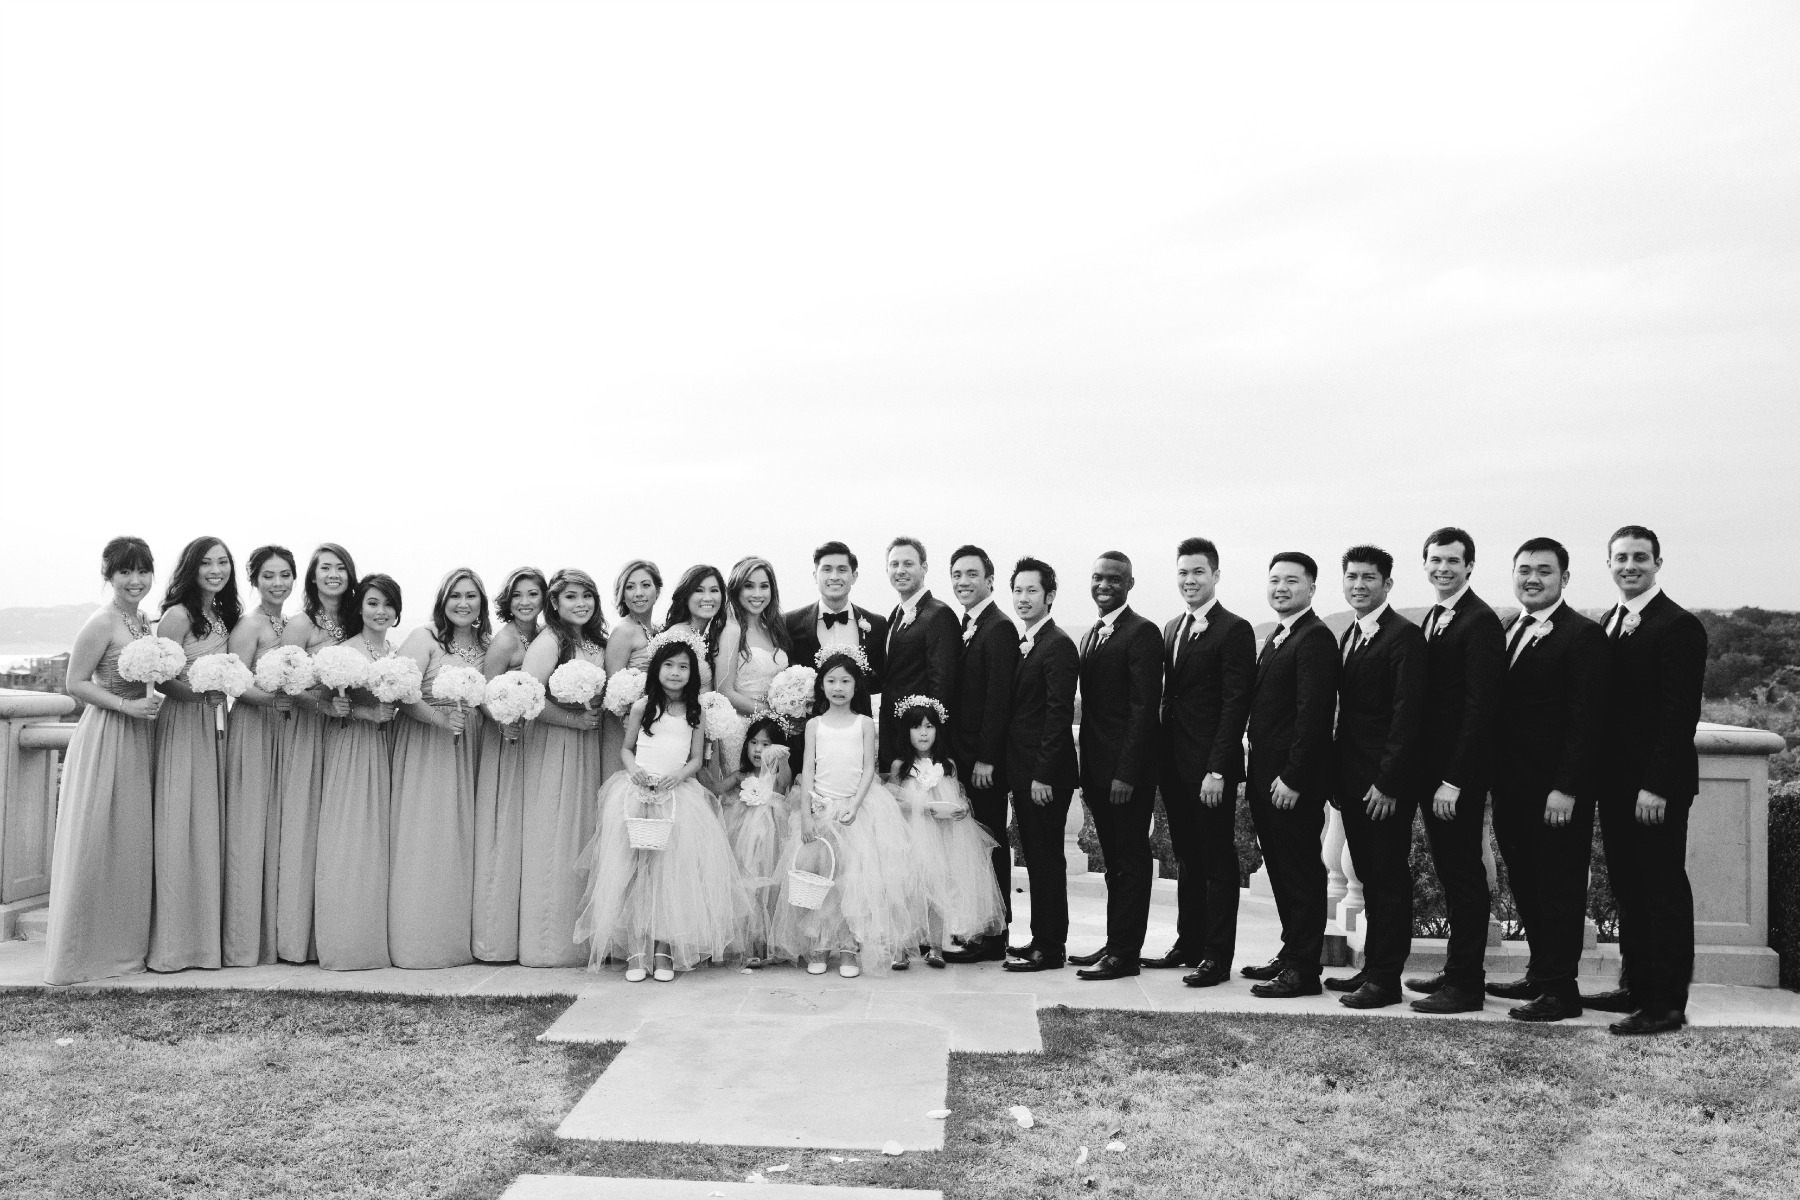 really big wedding party including the bridesmaids, wedding couple, flower girls and groomsmen